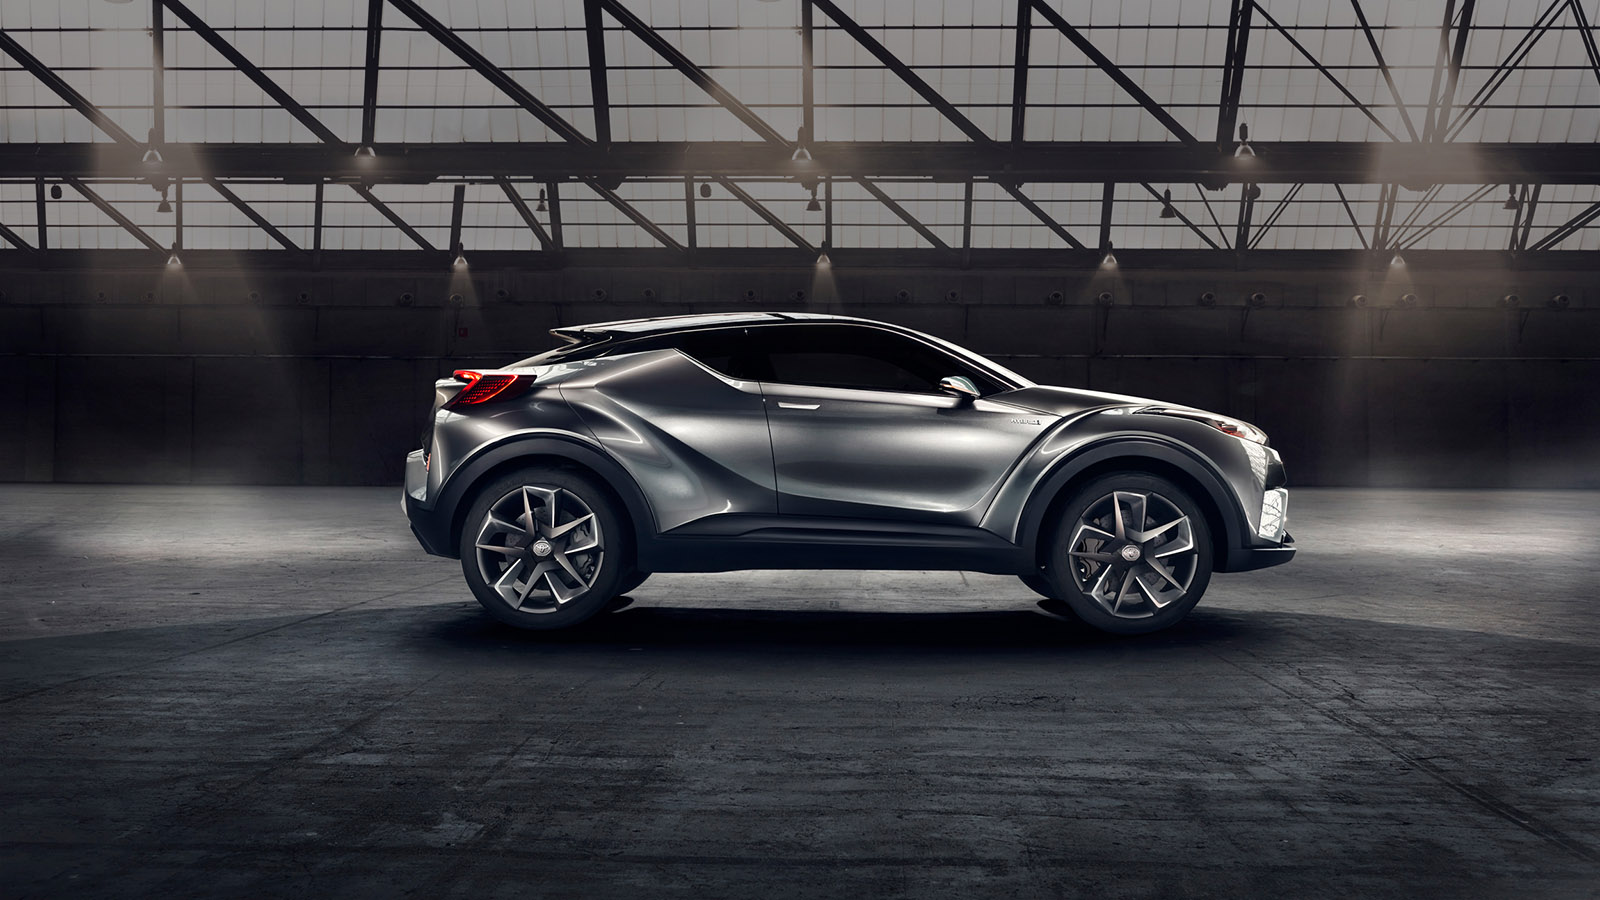 Toyota C-HR Concept: A Vision of the future